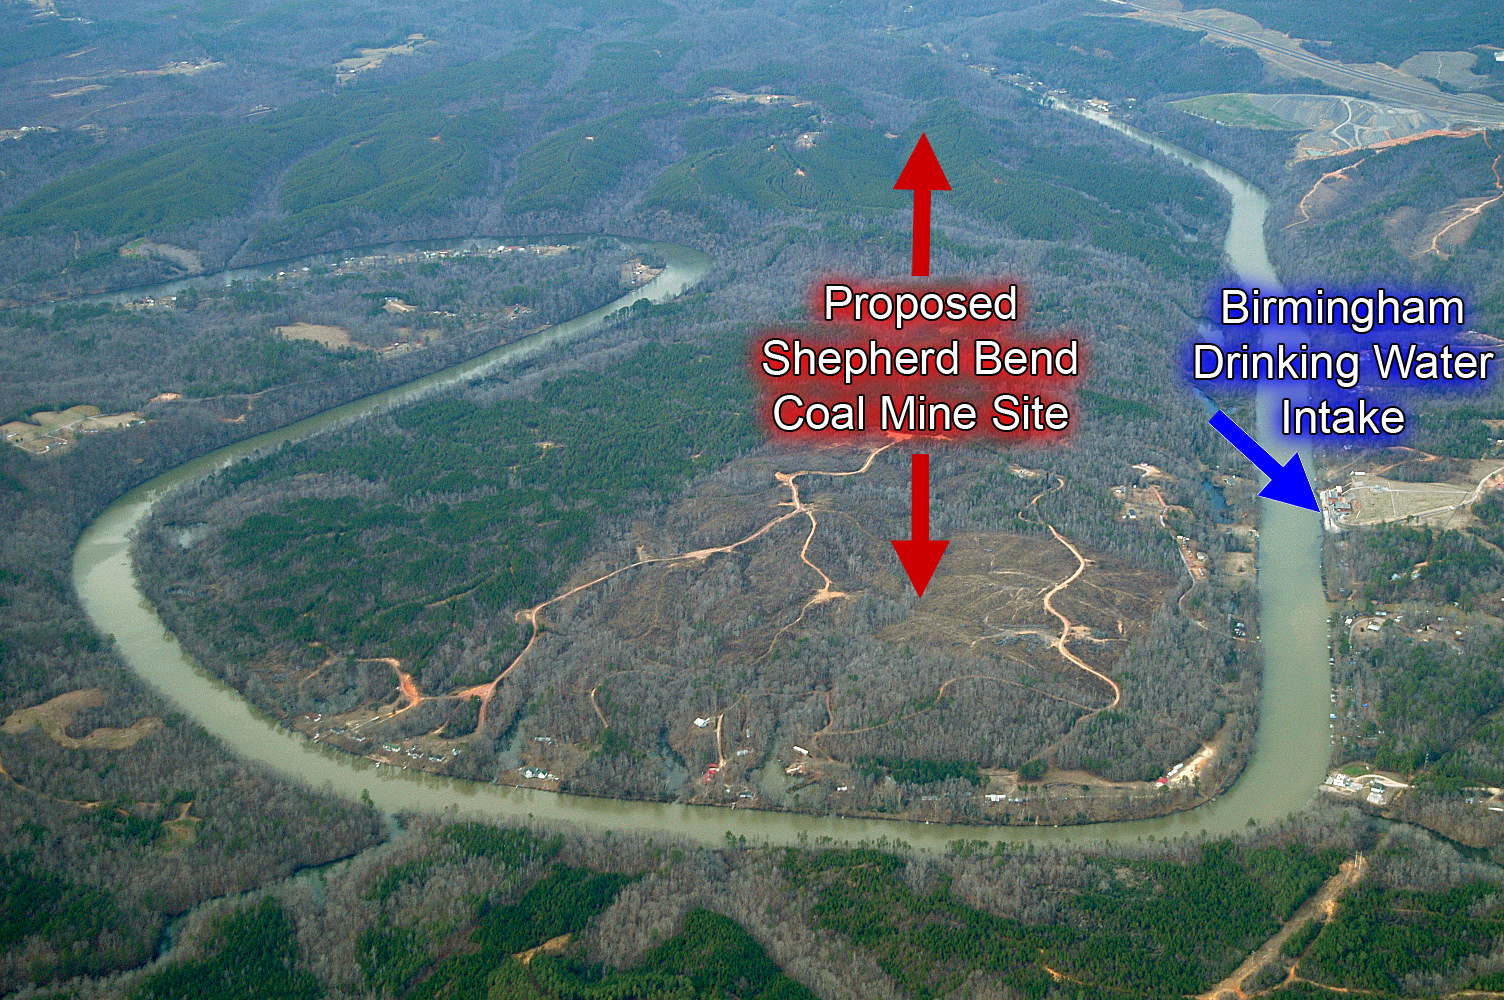 Shepard's Bend Mine on the Black Warrior River